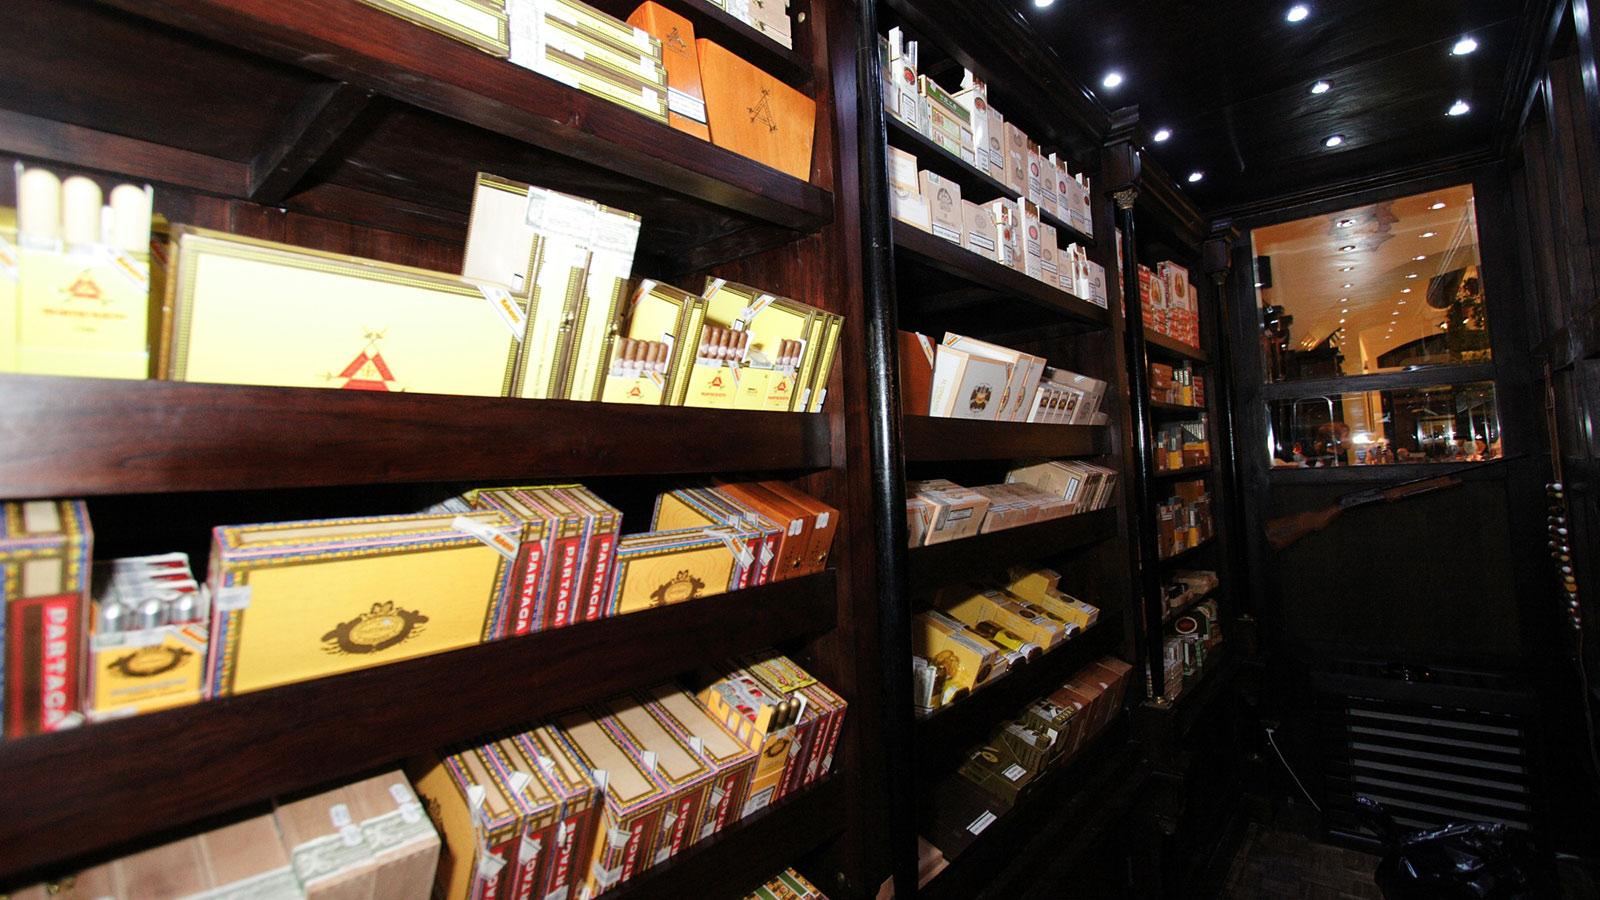 A glimpse inside the humidor at Prague's La Casa del Habano.